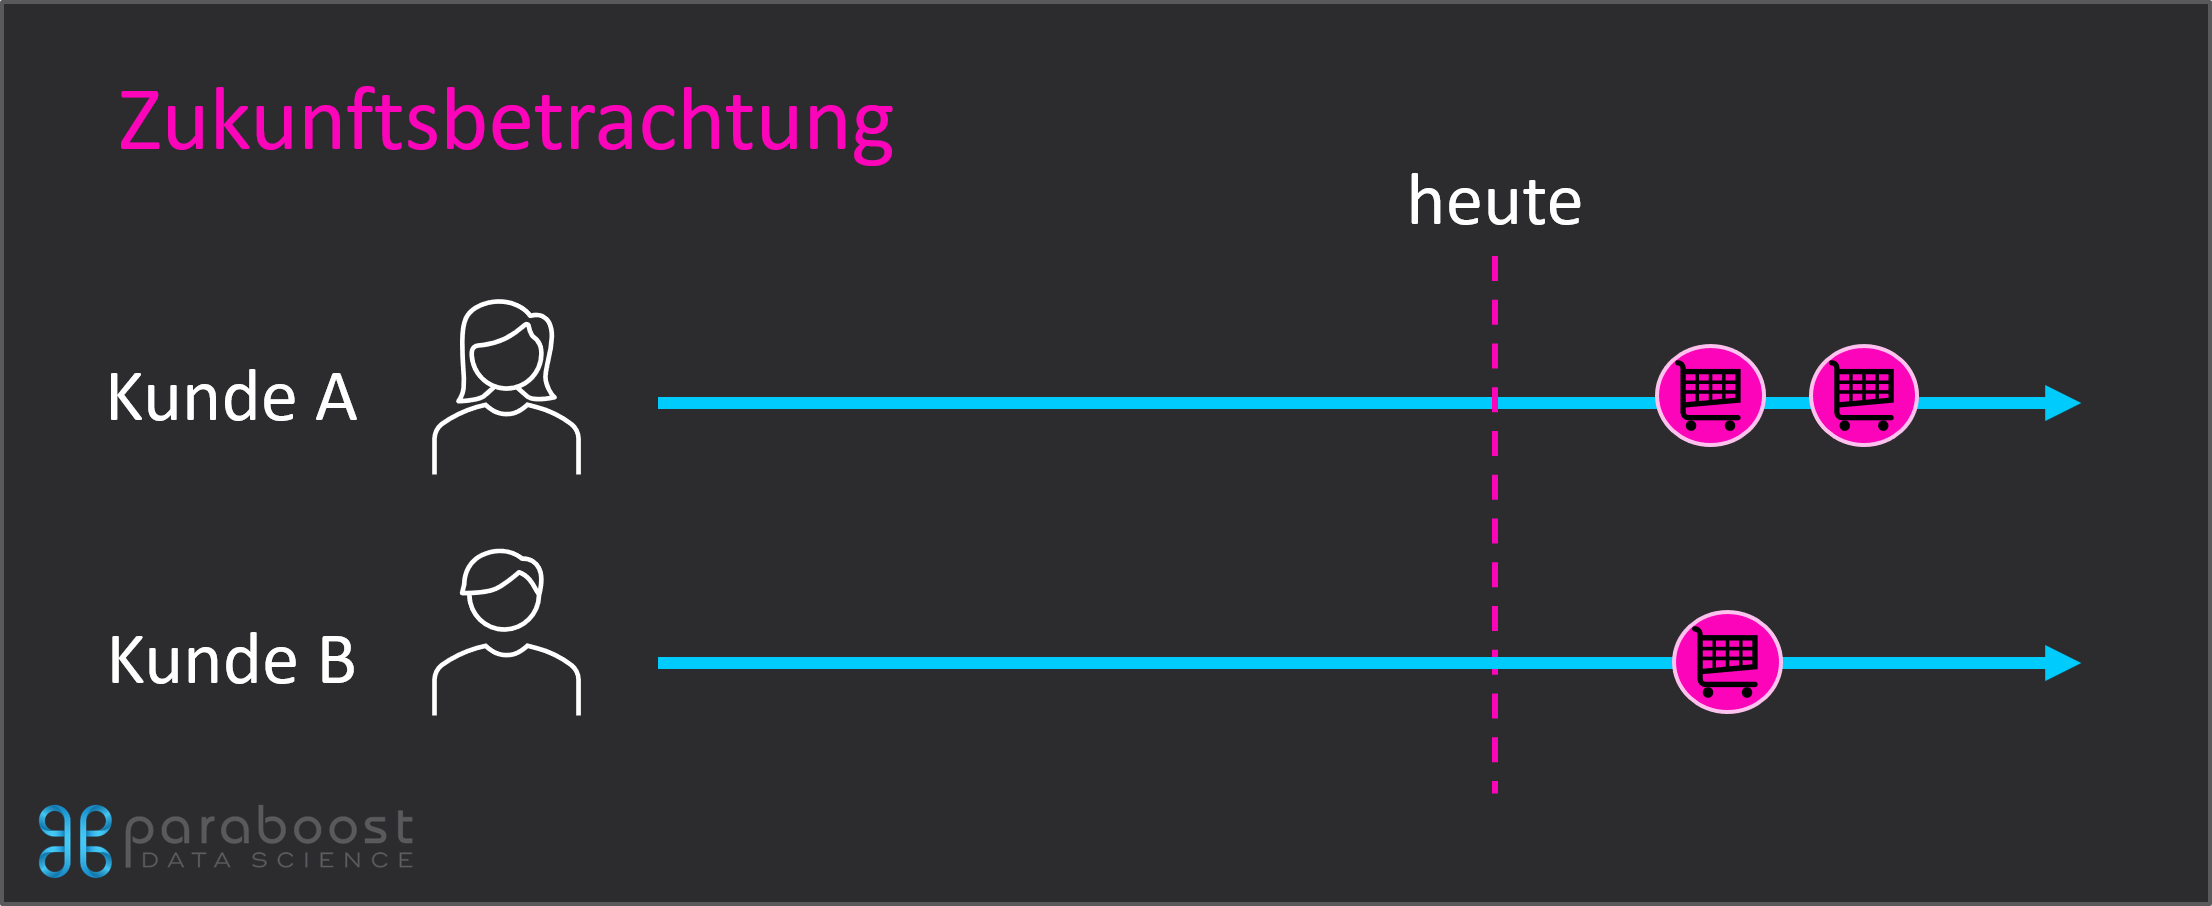 Customer Lifetime Value Zukunftsbetrachtung